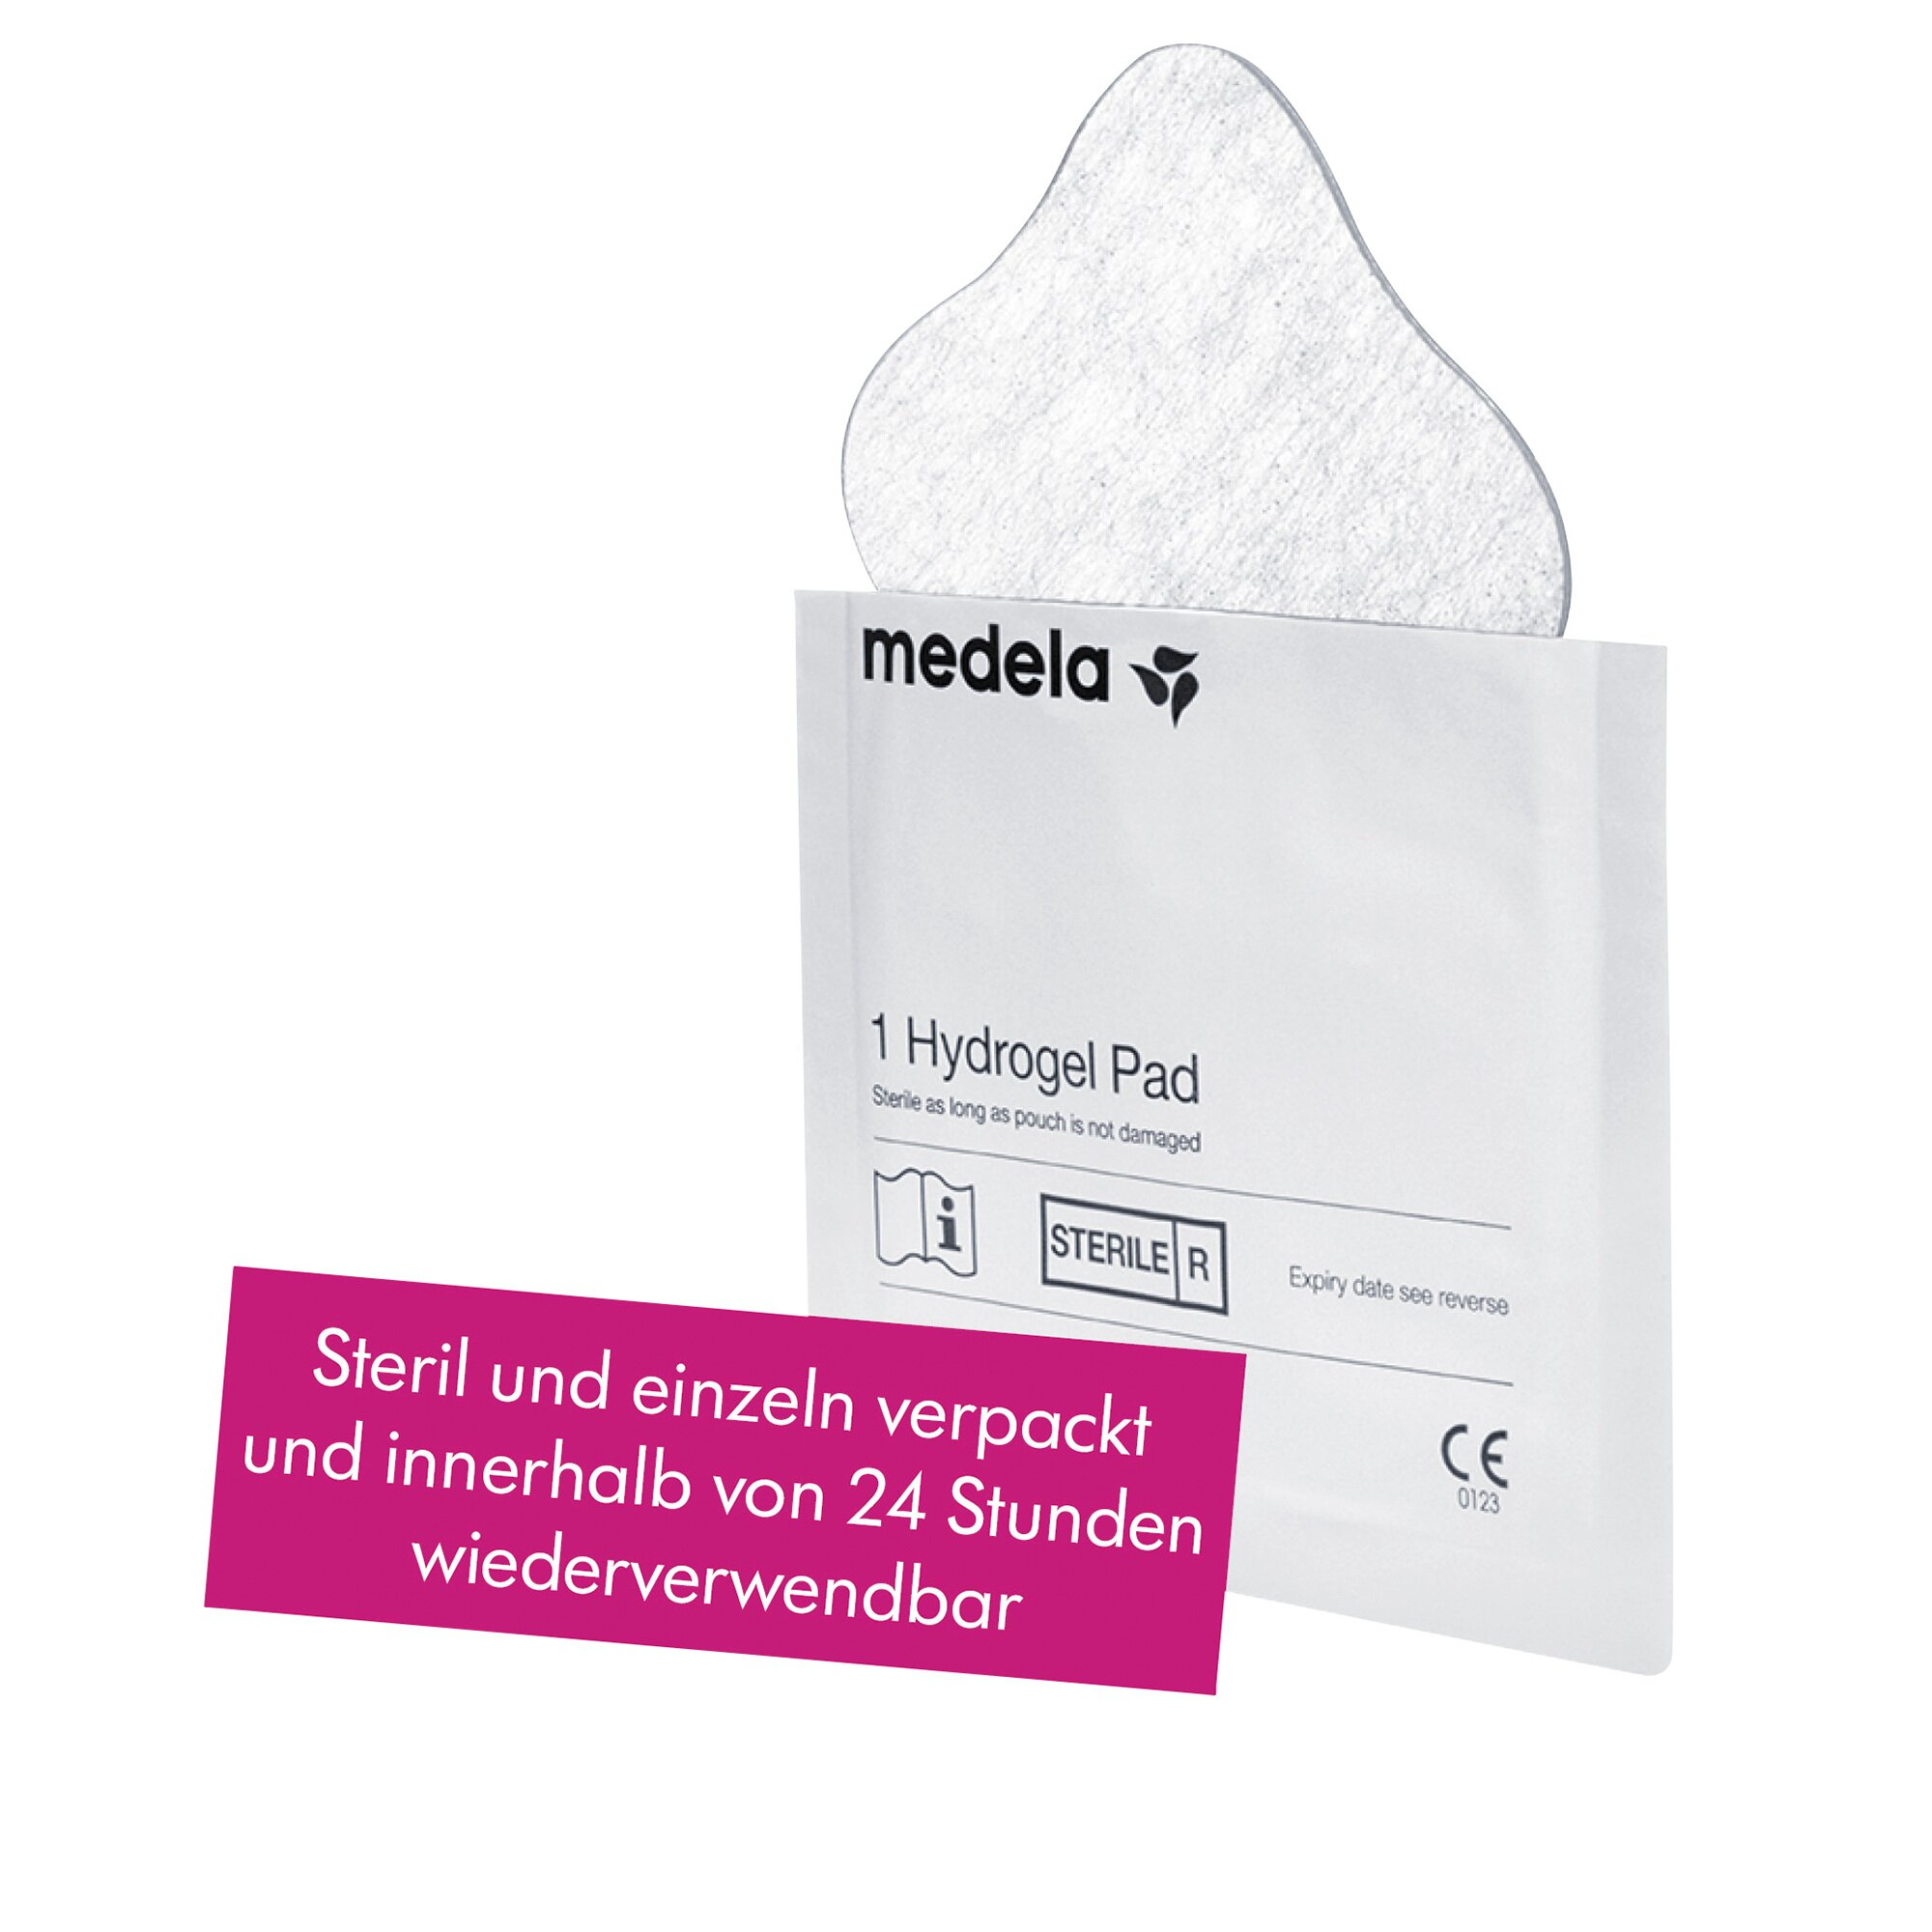 medela-hydrogel-pads-fur-brustwarzen-4-stuck-